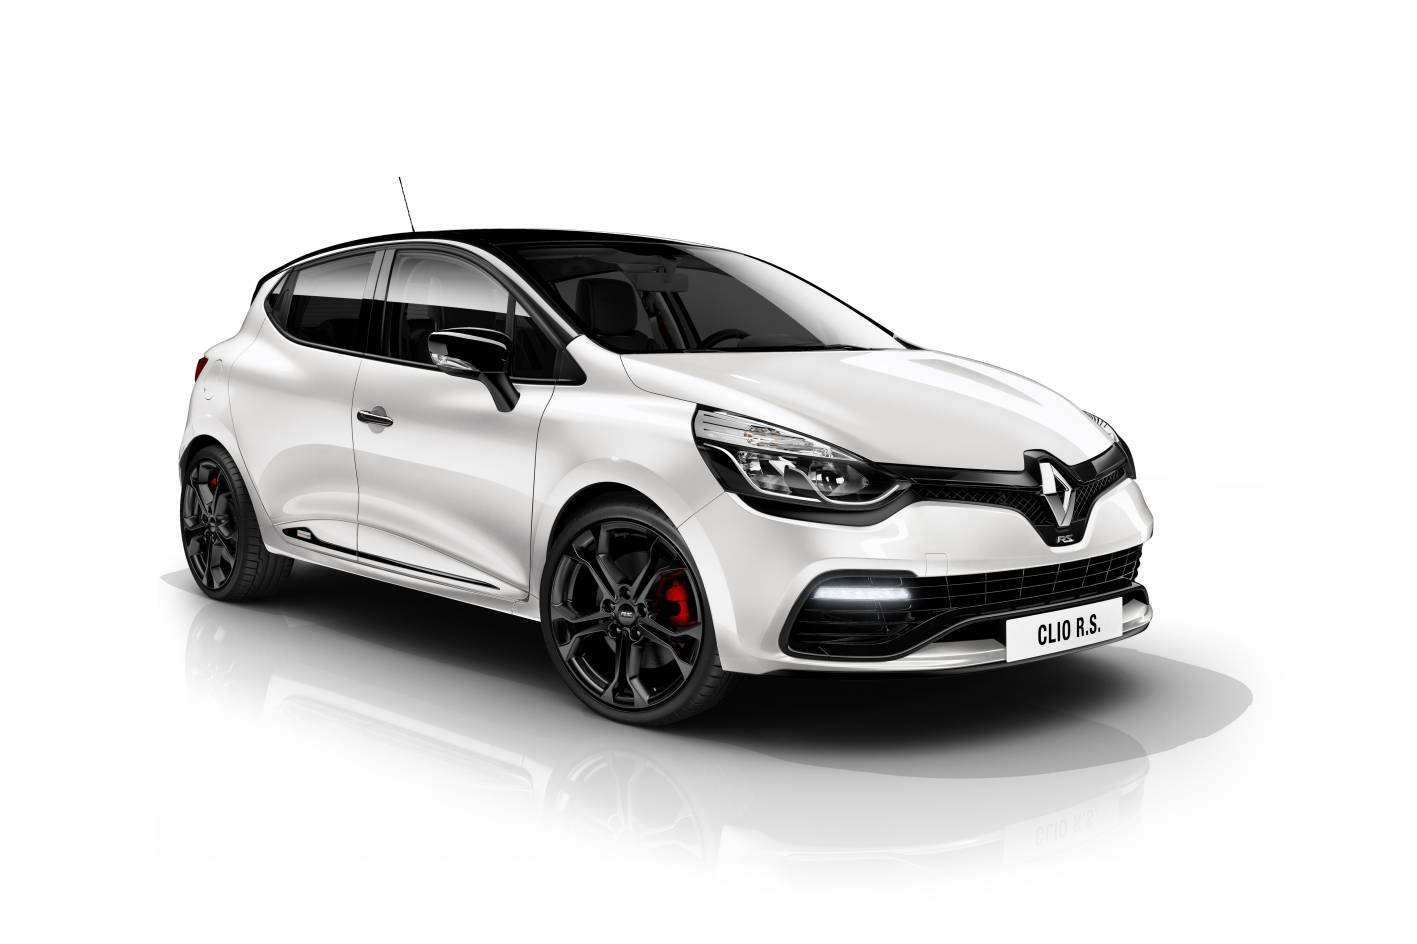 renault cars news renault releases clio r s monaco gp. Black Bedroom Furniture Sets. Home Design Ideas